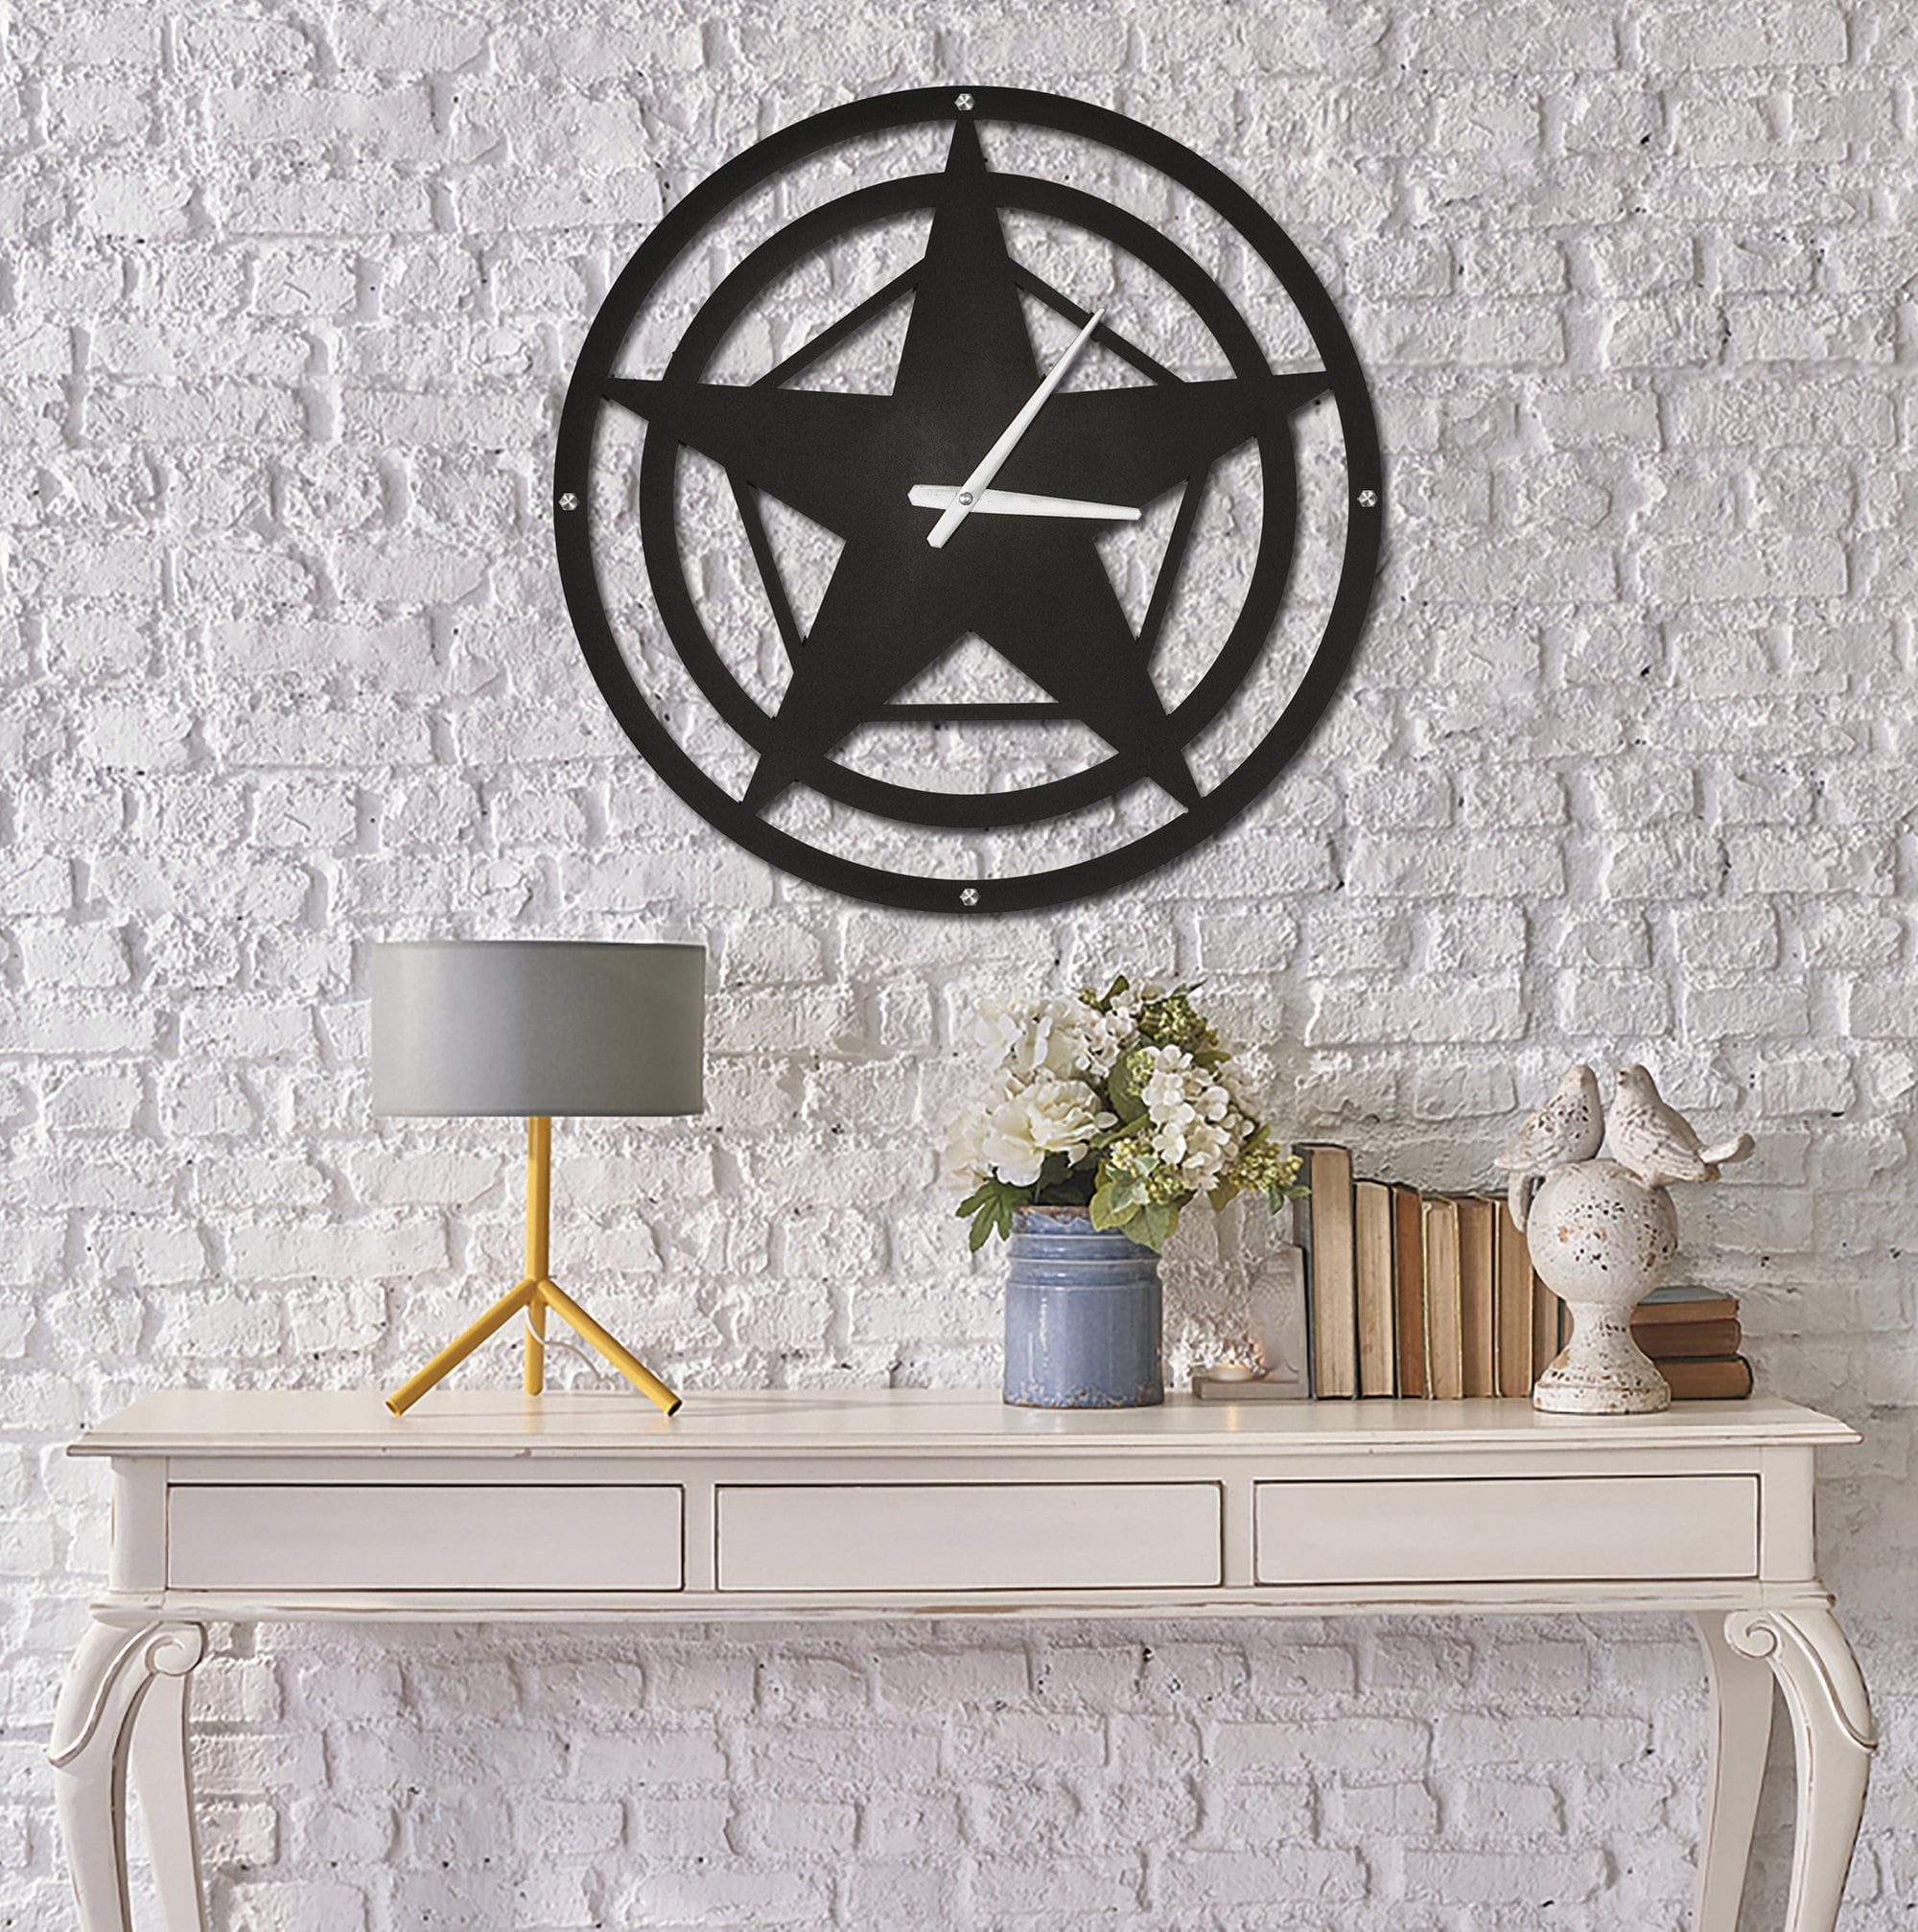 Star metal wall clock for a unique design in your interior